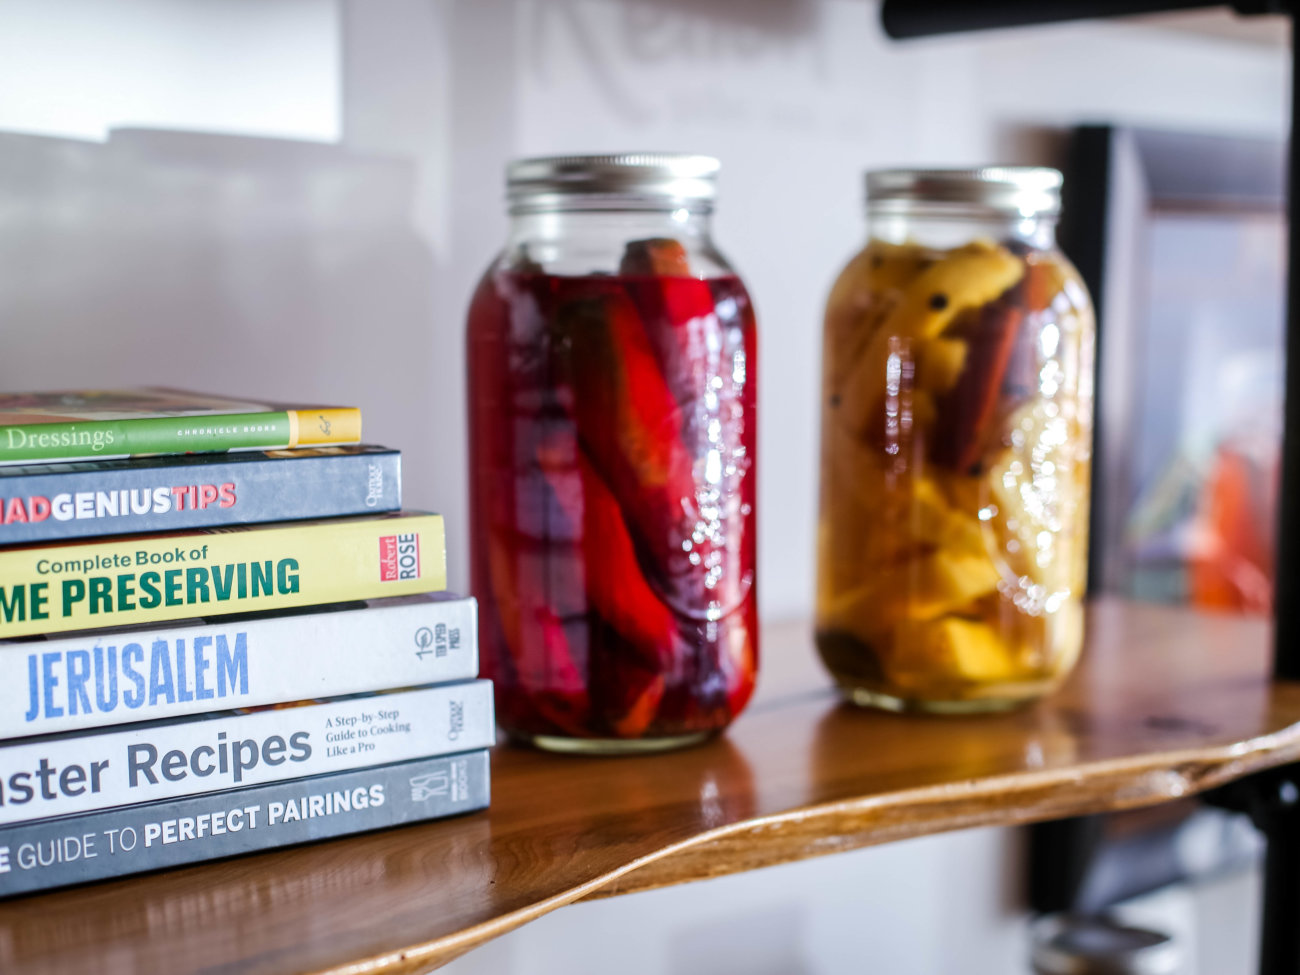 Cookbooks and canned vegetables in jars